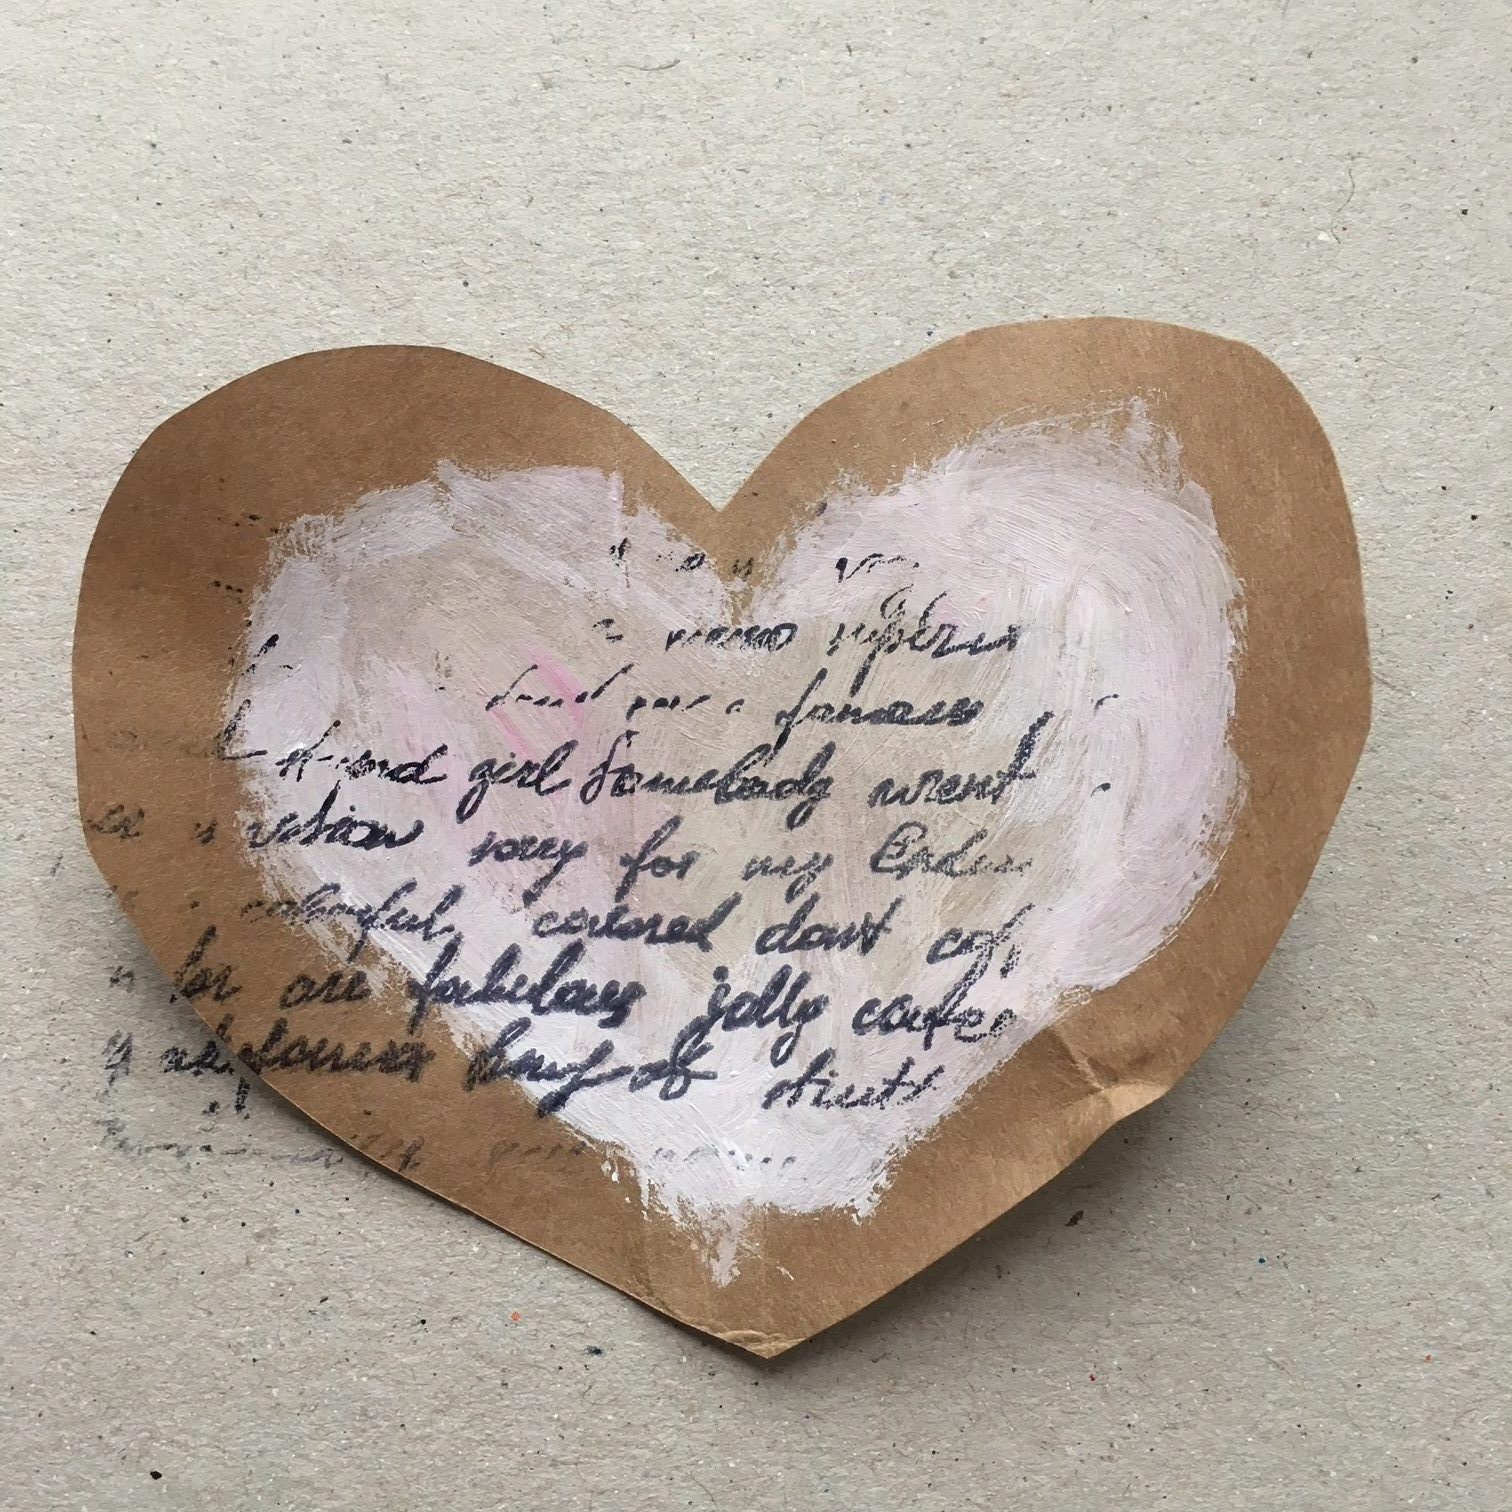 stamp or better write something in the middle of the hearts